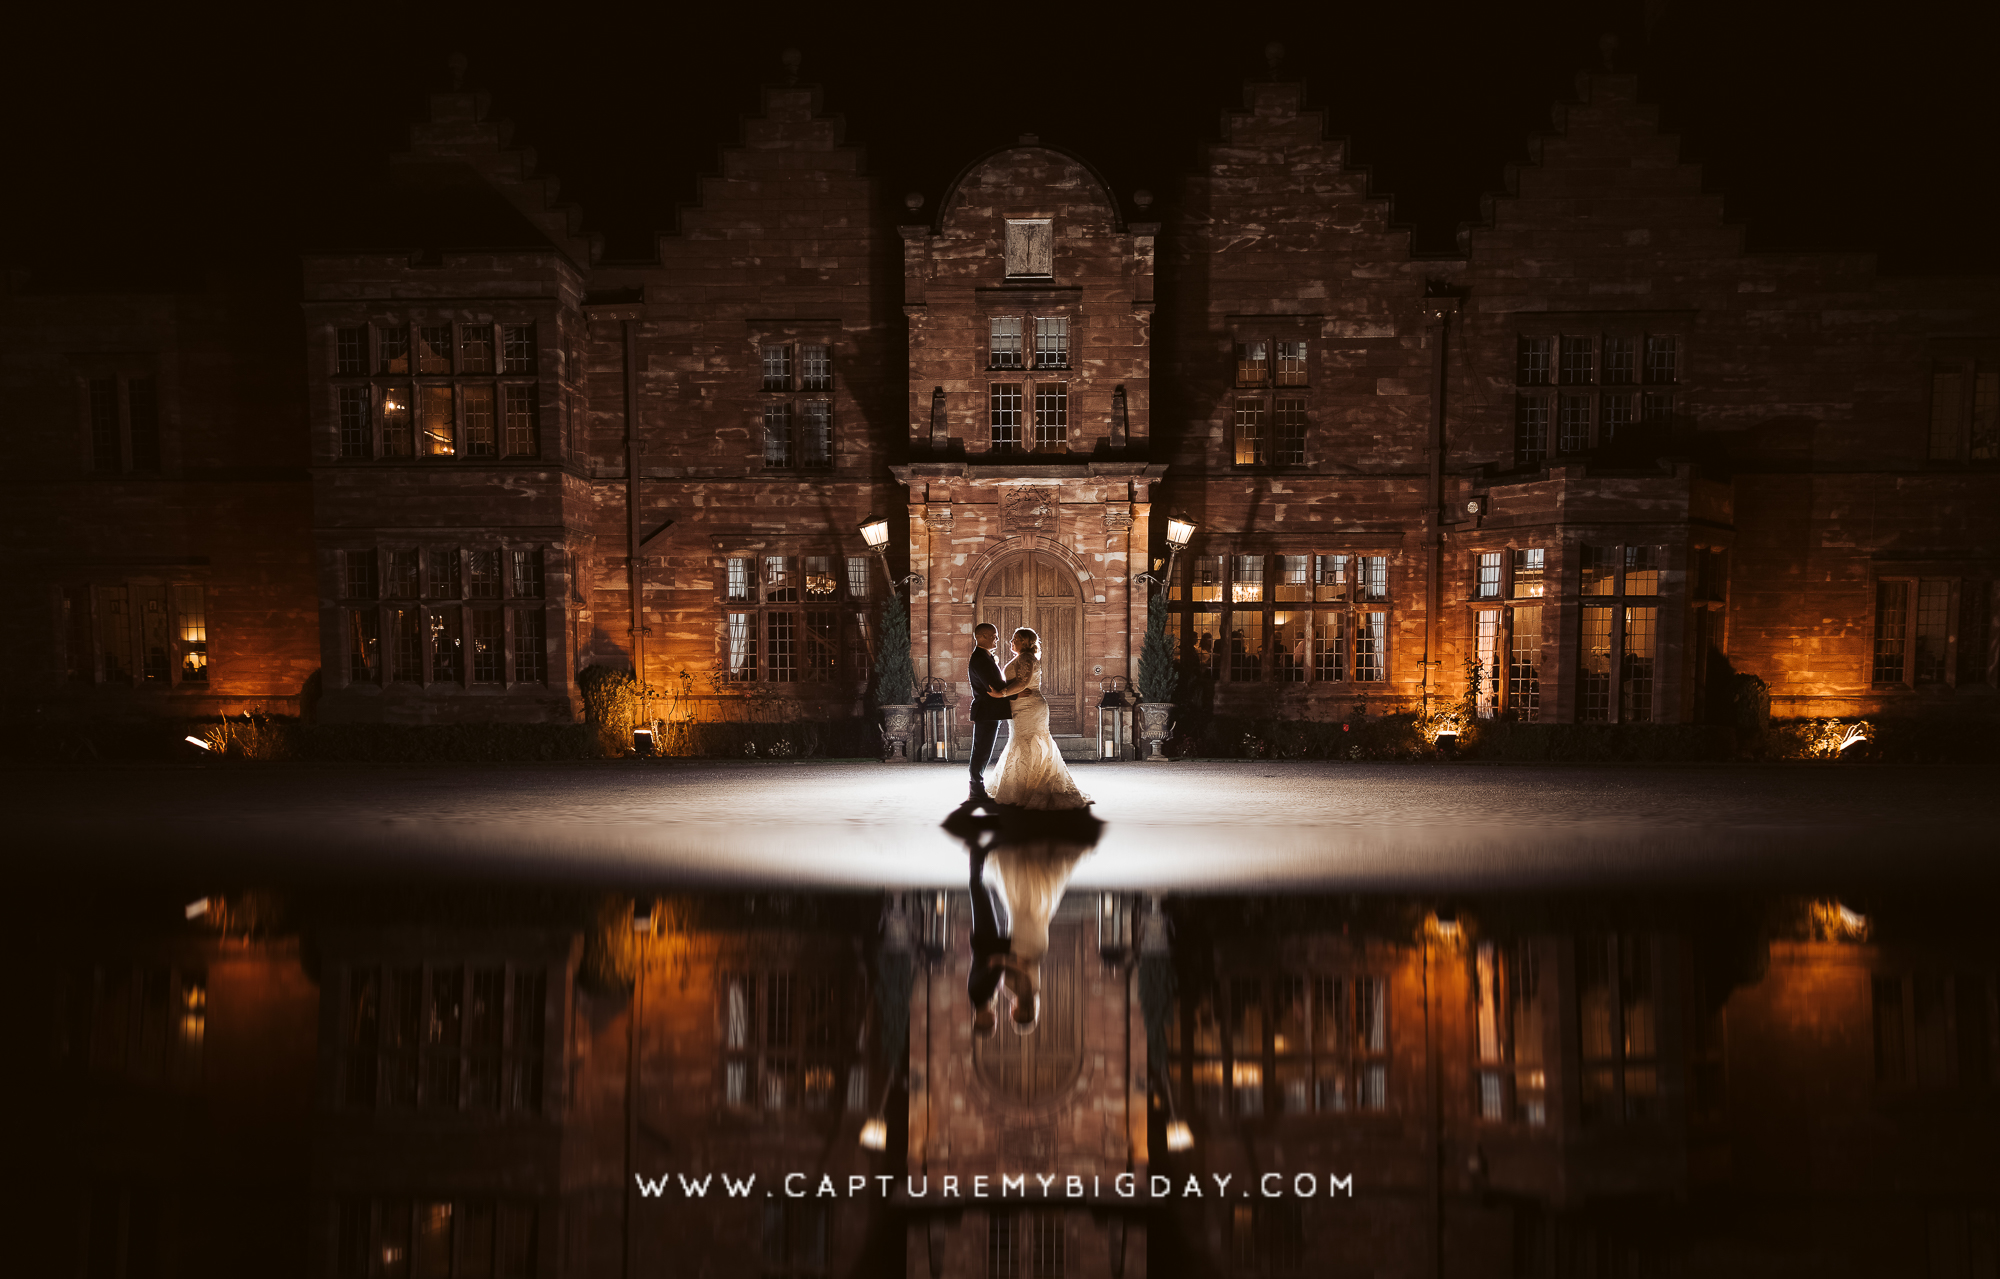 Wrenbury Hall at night